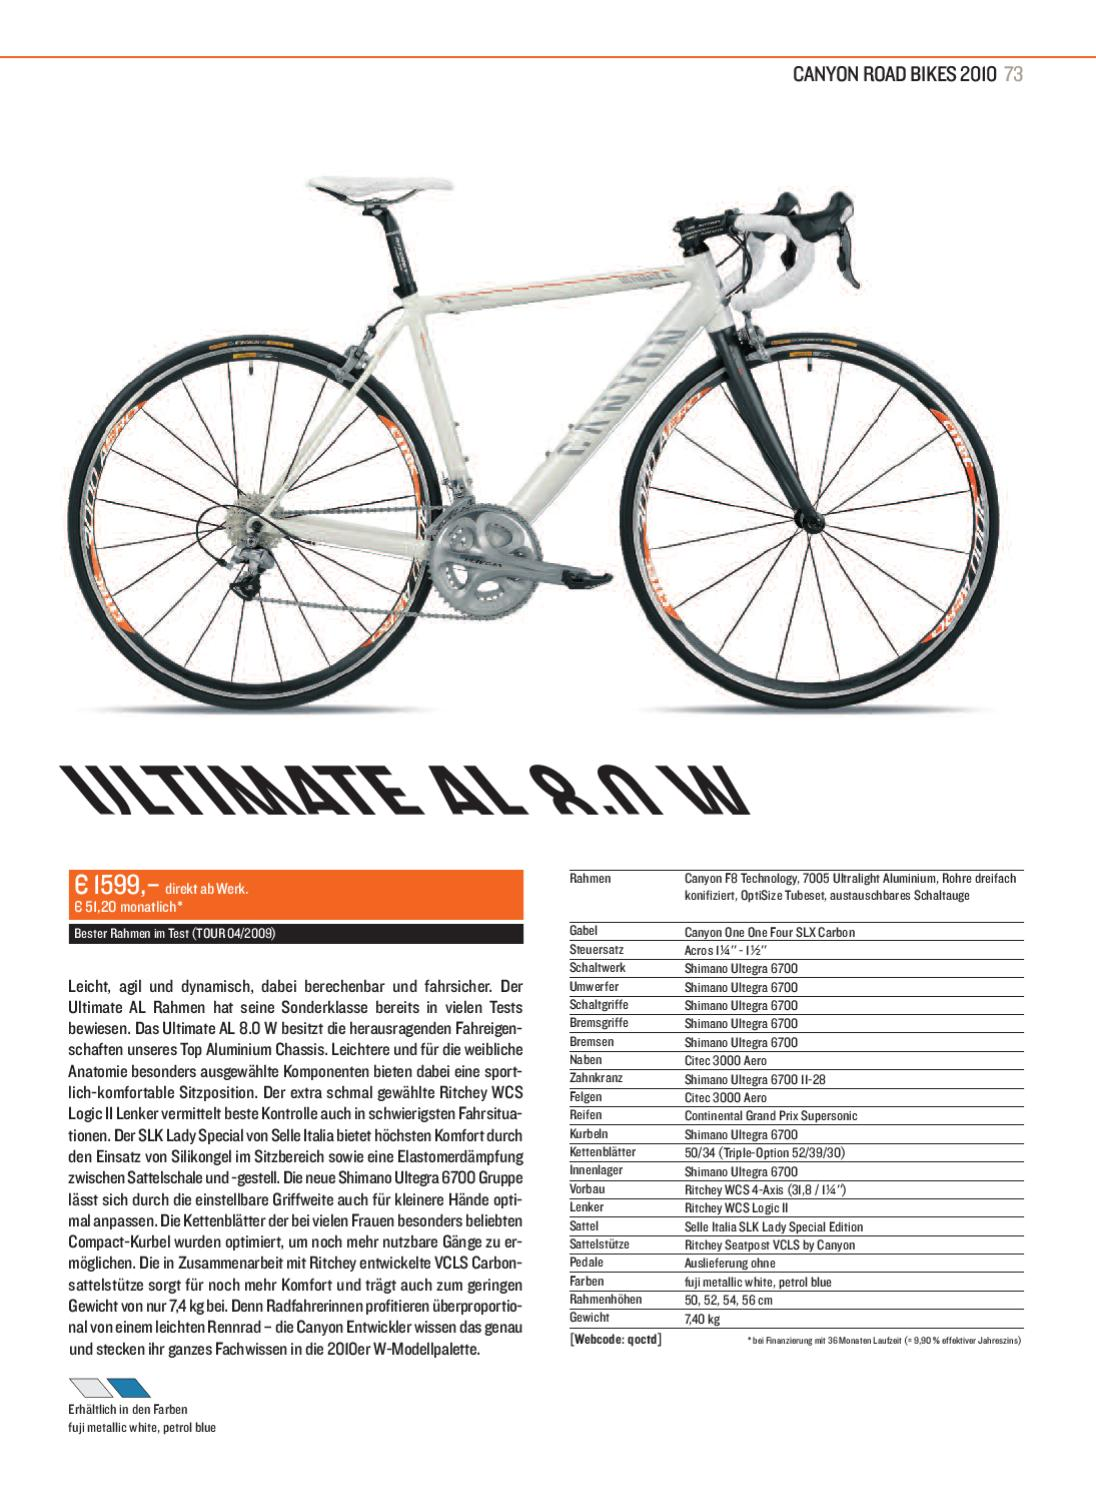 Canyon Roadbike Katalog 2010 by Canyon Bicycles GmbH - issuu